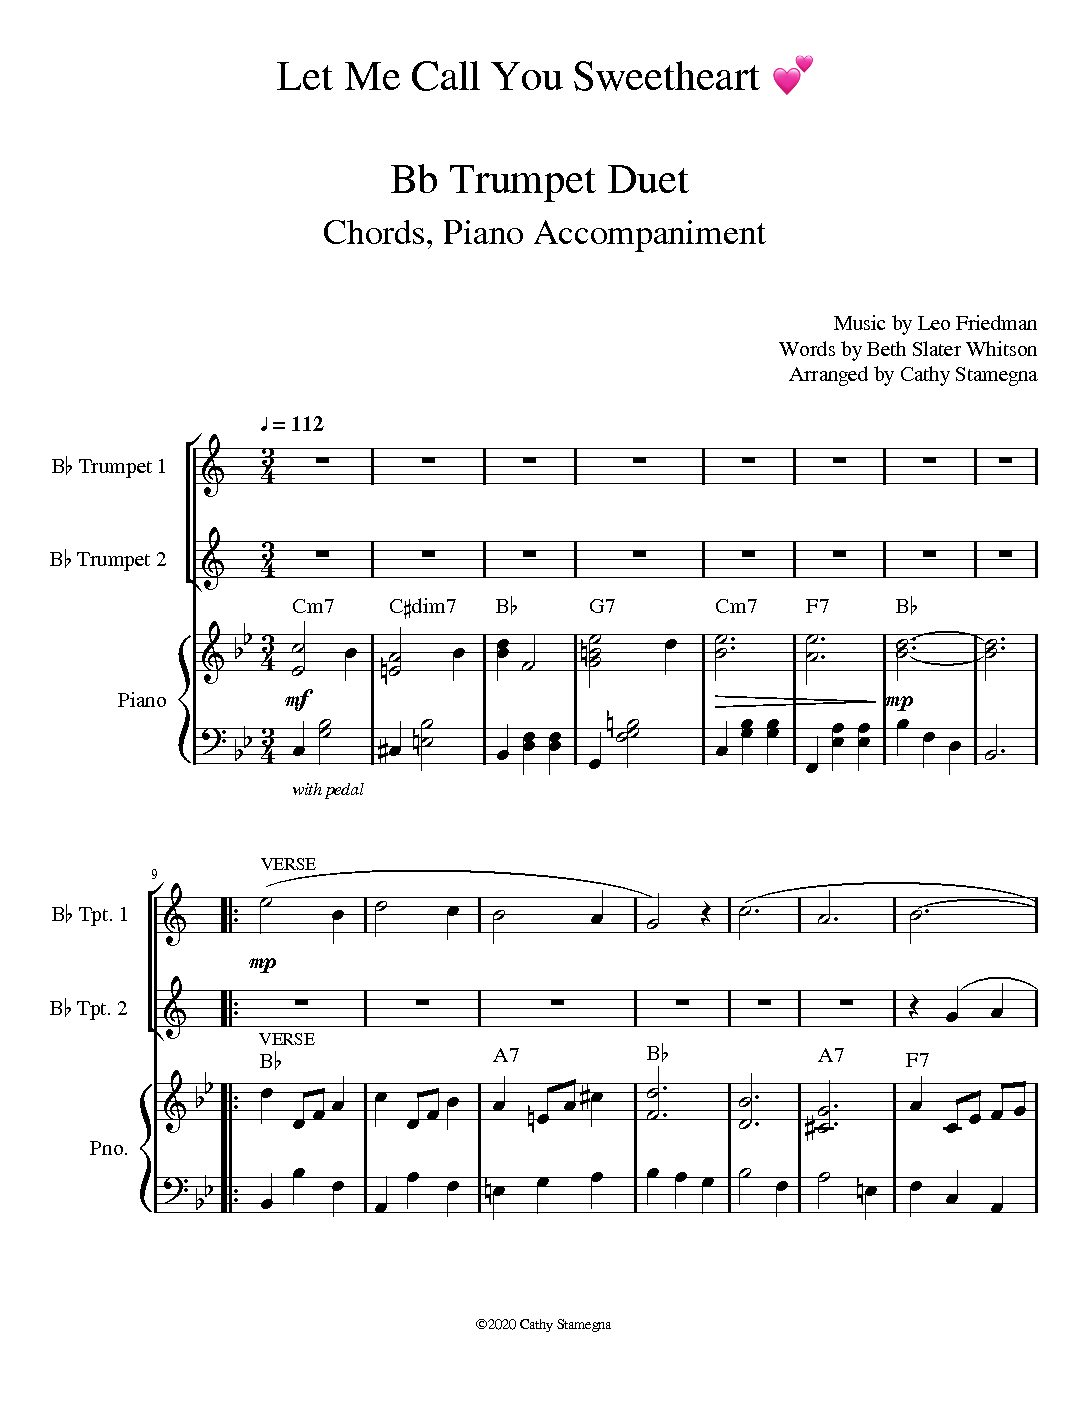 Let Me Call You Sweetheart (Brass Duet, Chords, Piano Accompaniment)